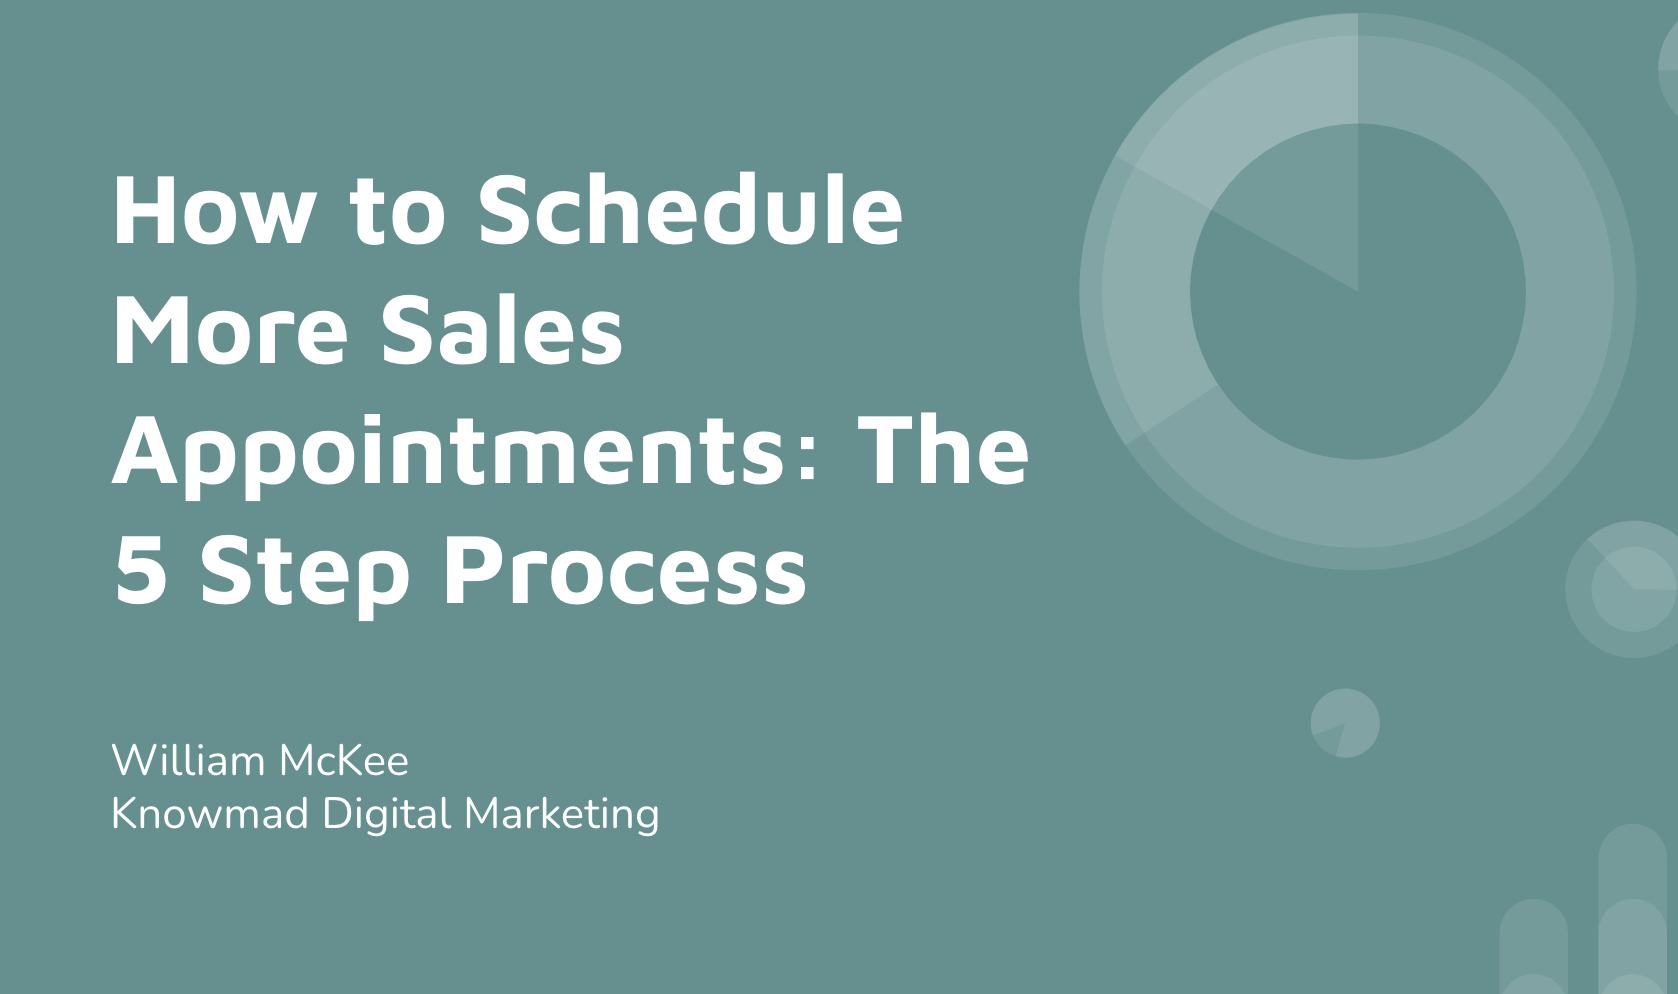 How to Schedule More Sales Appointments